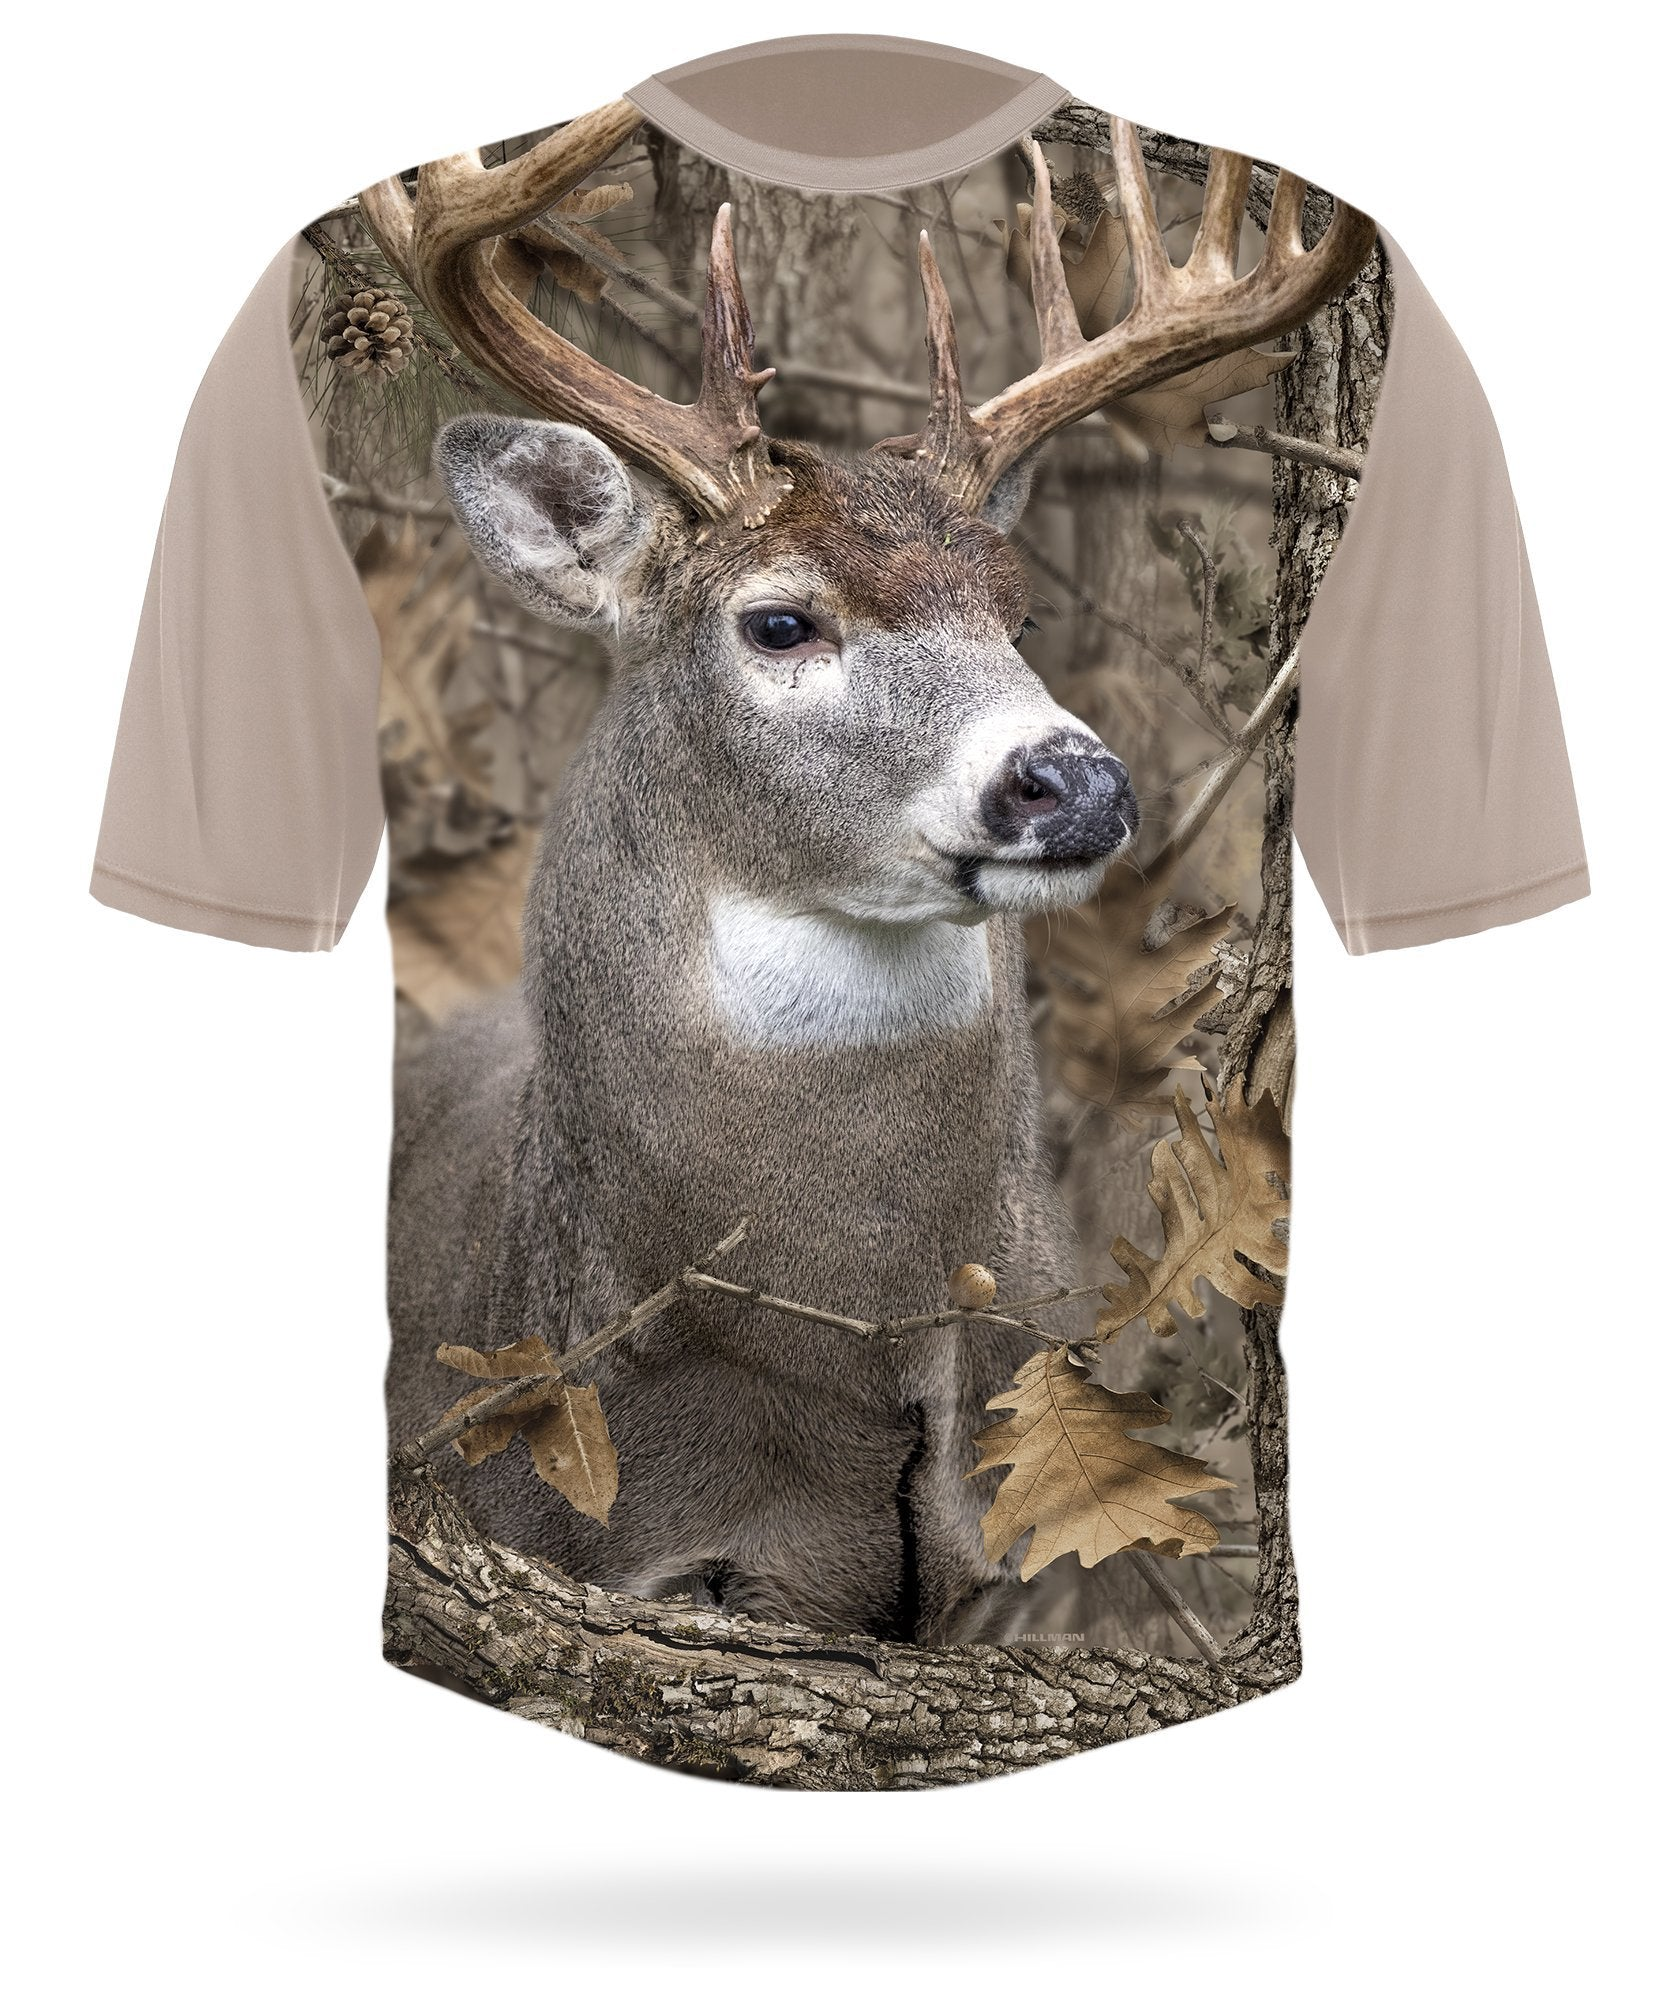 Whitetail Deer Shirt Short Sleeve Camo - HILLMAN® hunting gear